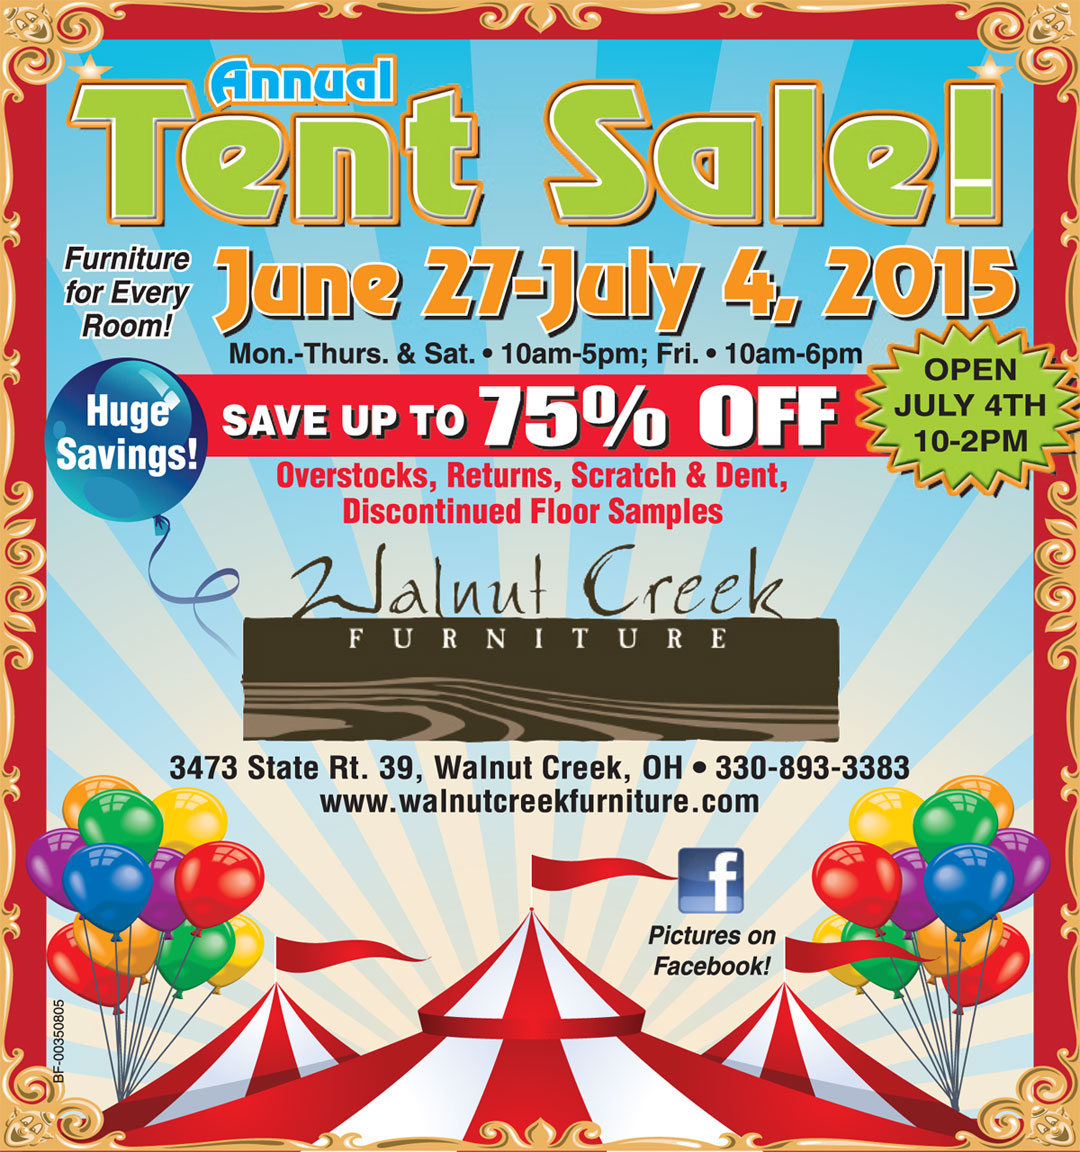 annual_tent_sale_ad_walnut_creek_furniture_2015